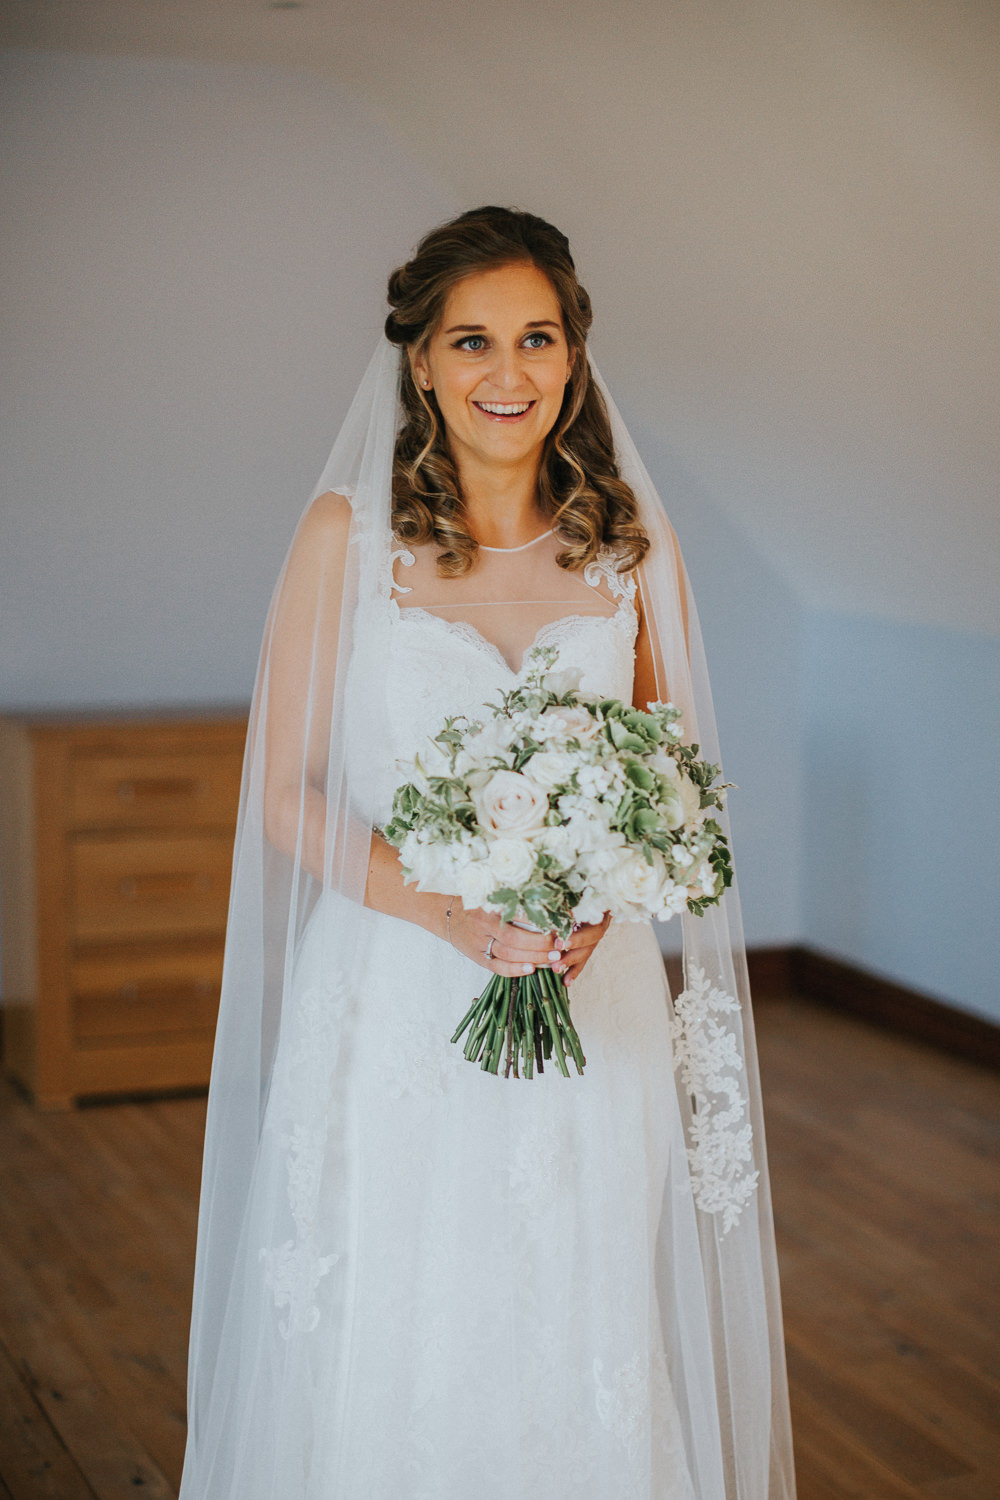 Bride Bridal Sleeveless Embroidered Blush White Greenery Bouquet Veil Loseley Park Wedding Kit Myers Photography